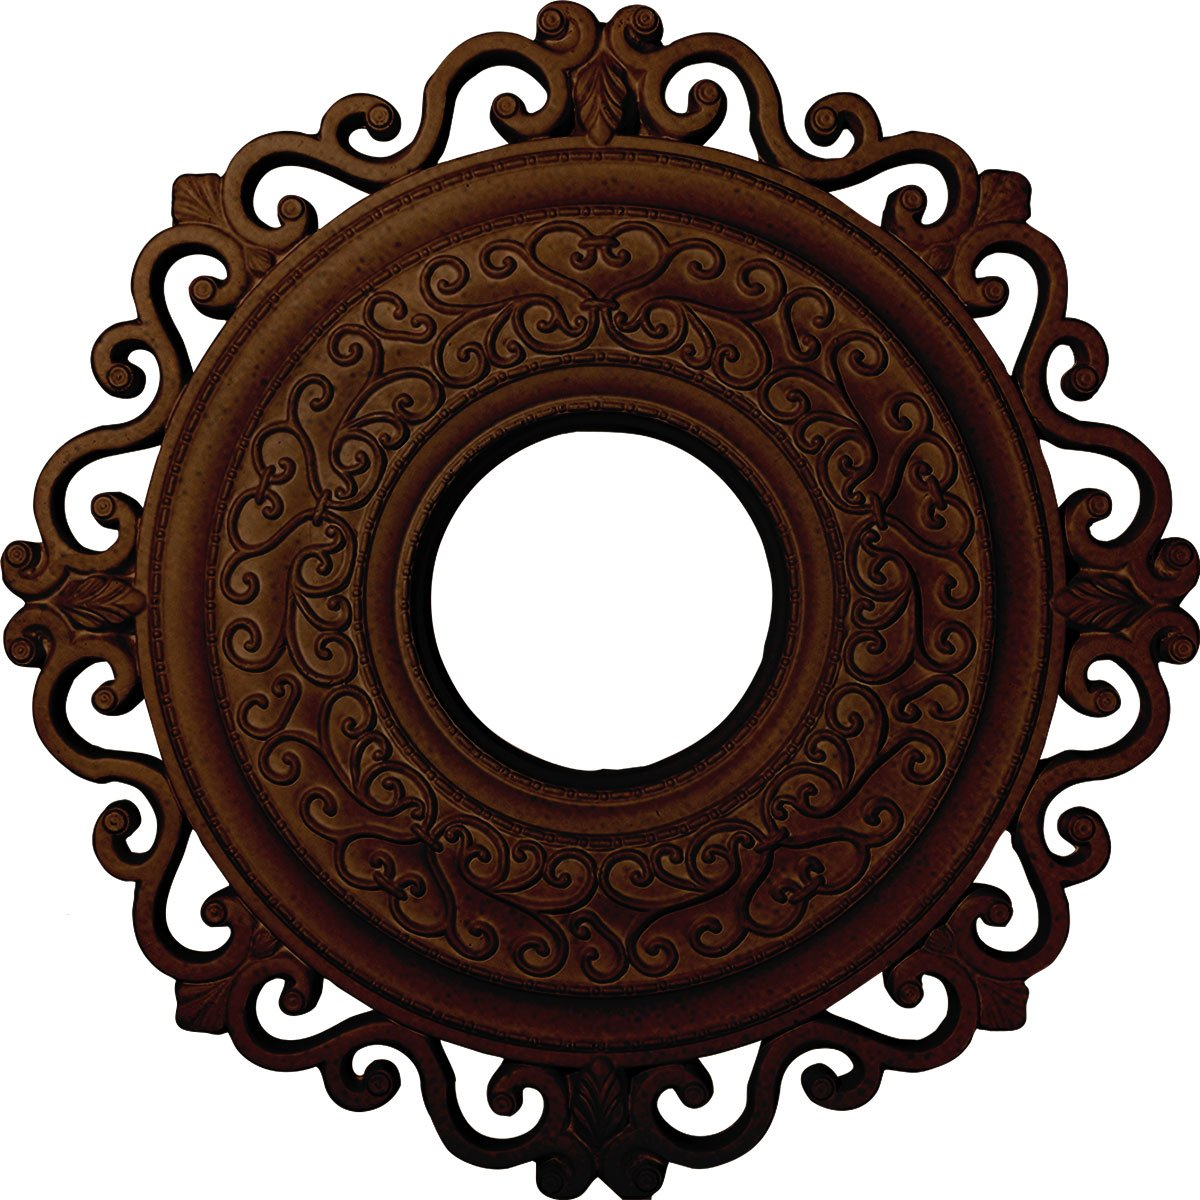 Ekena Millwork CM22ORRZS 22'' OD x 6 ID x 1 3/4'' P Orrington Ceiling Medallion (fits Canopies up to 6 1/4''), Rubbed Bronze